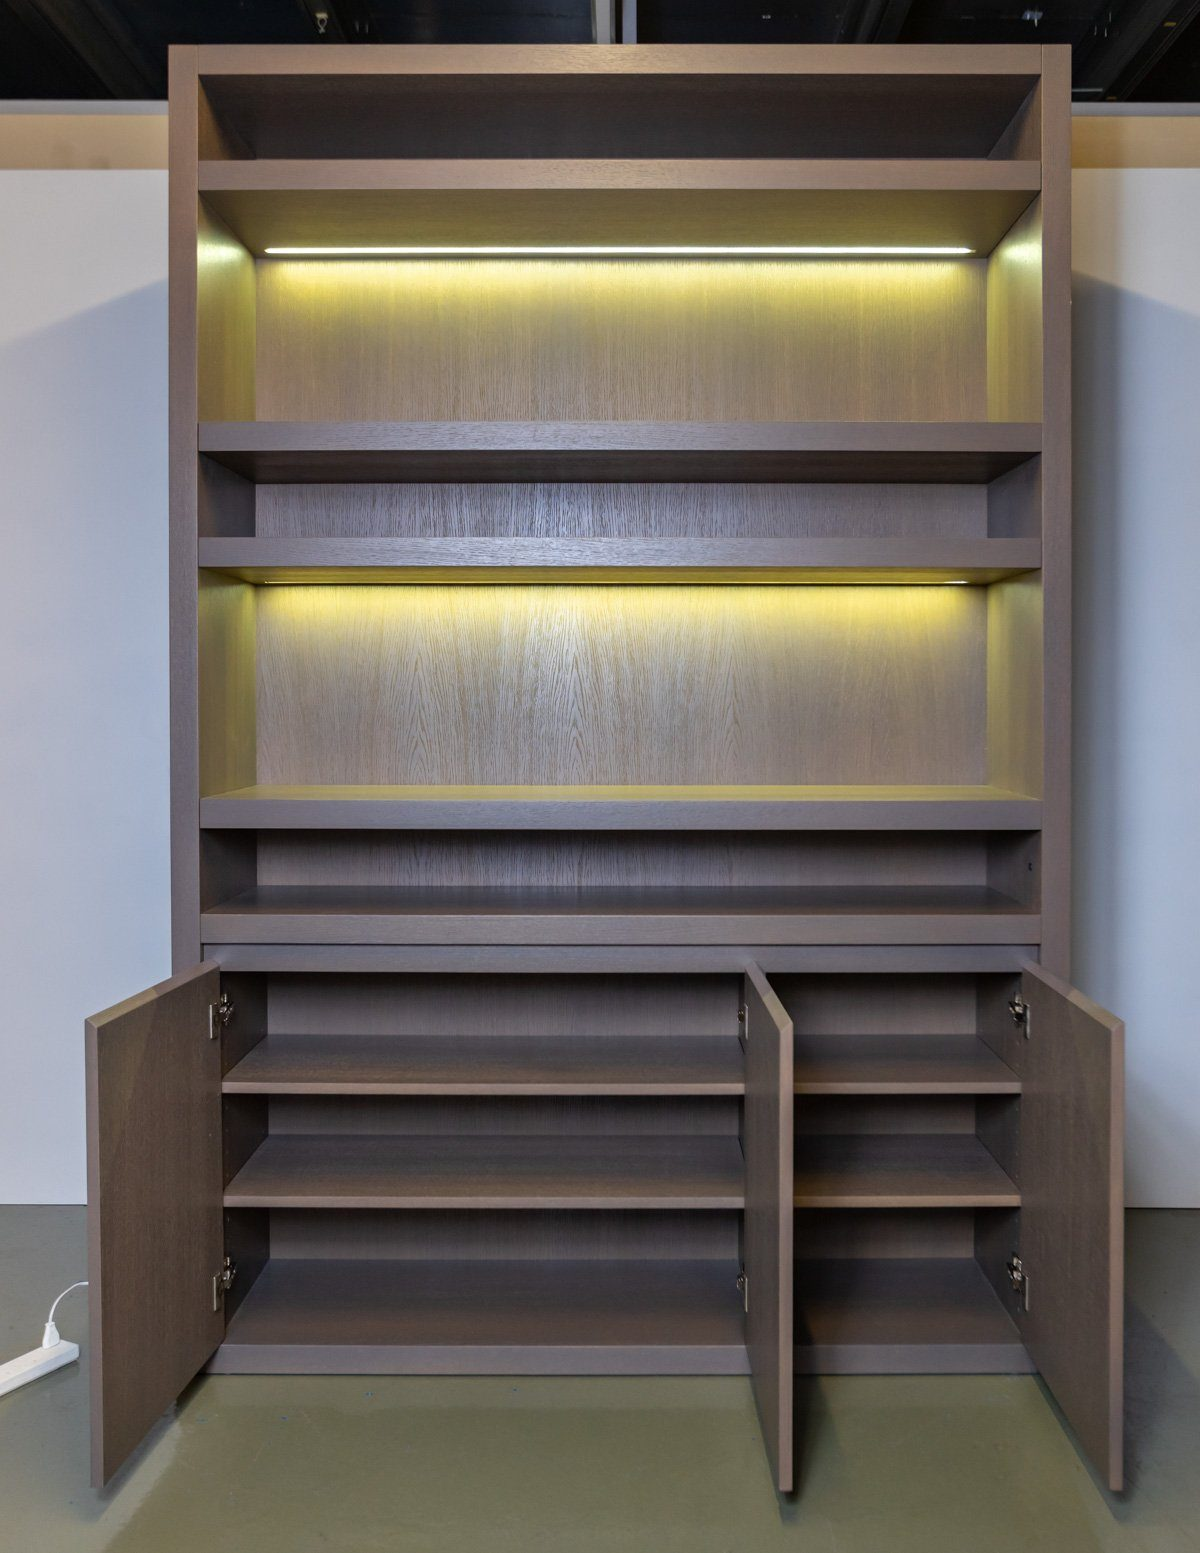 Shelving - Floor To Ceiling Mobilfresno Book Cases (2 Available)